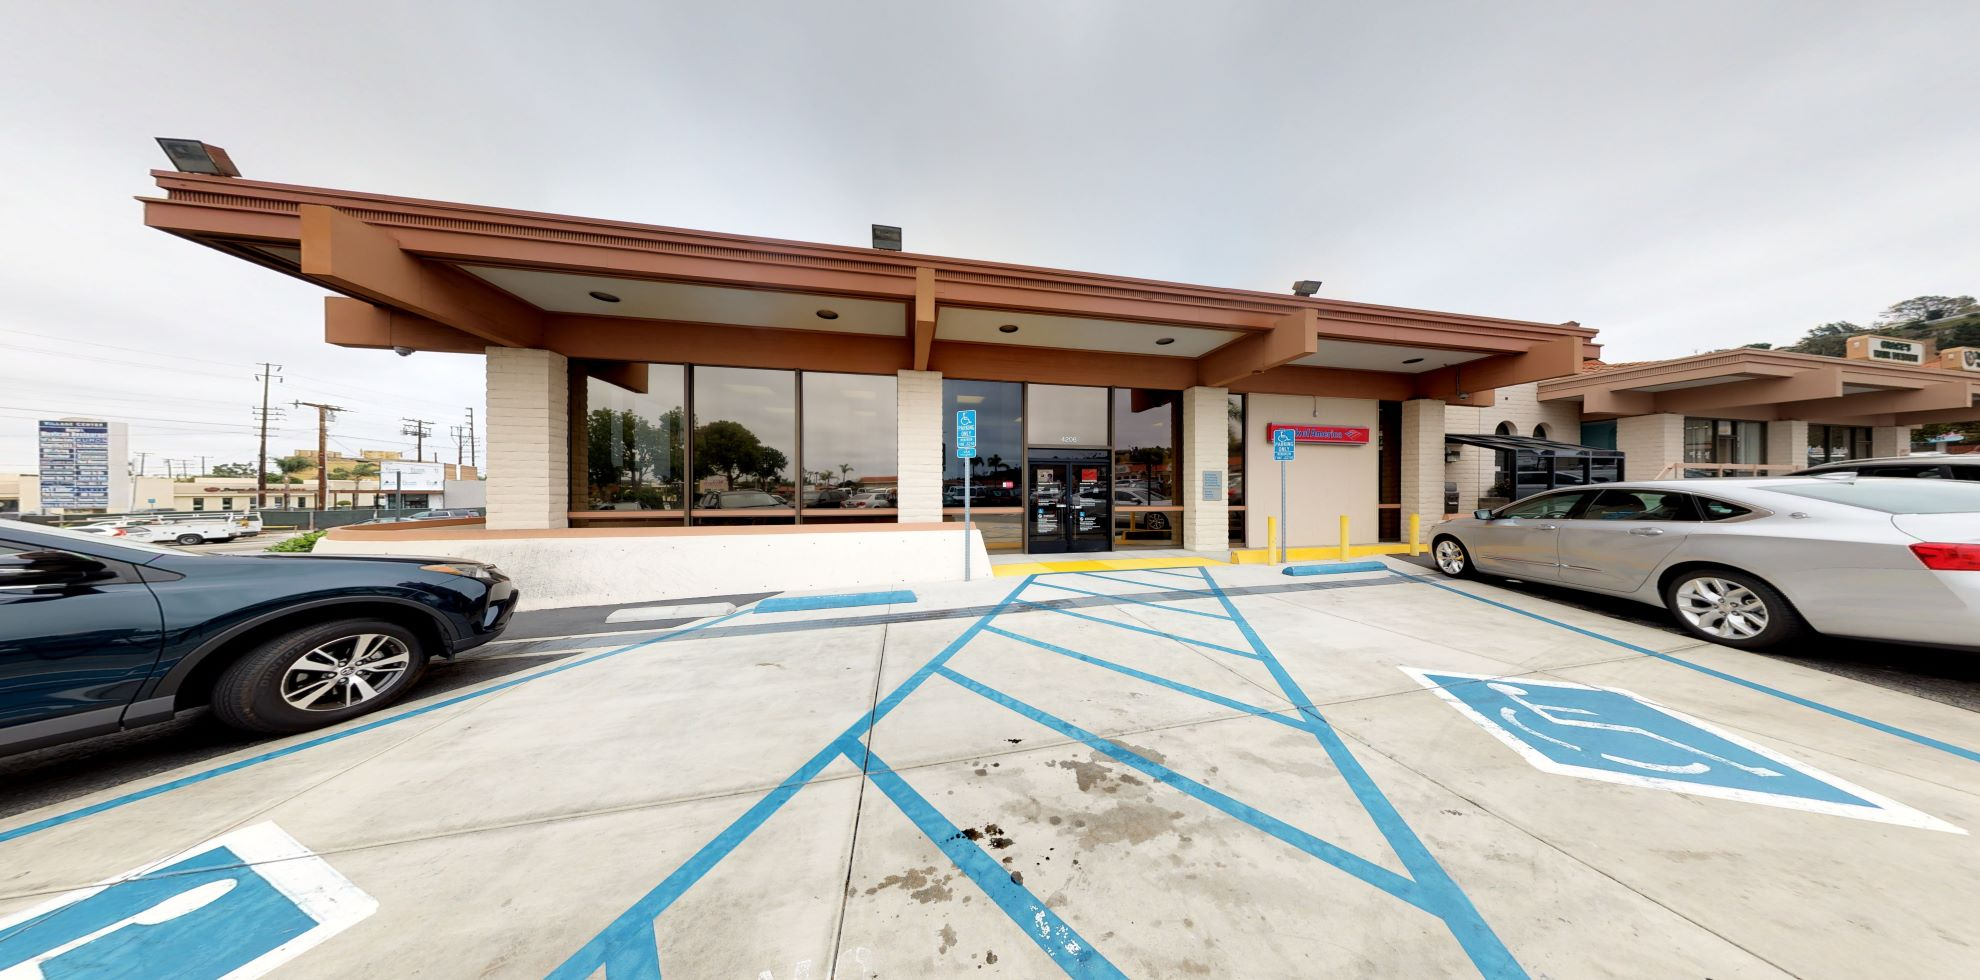 Bank of America financial center with drive-thru ATM   4206 Pacific Coast Hwy, Torrance, CA 90505